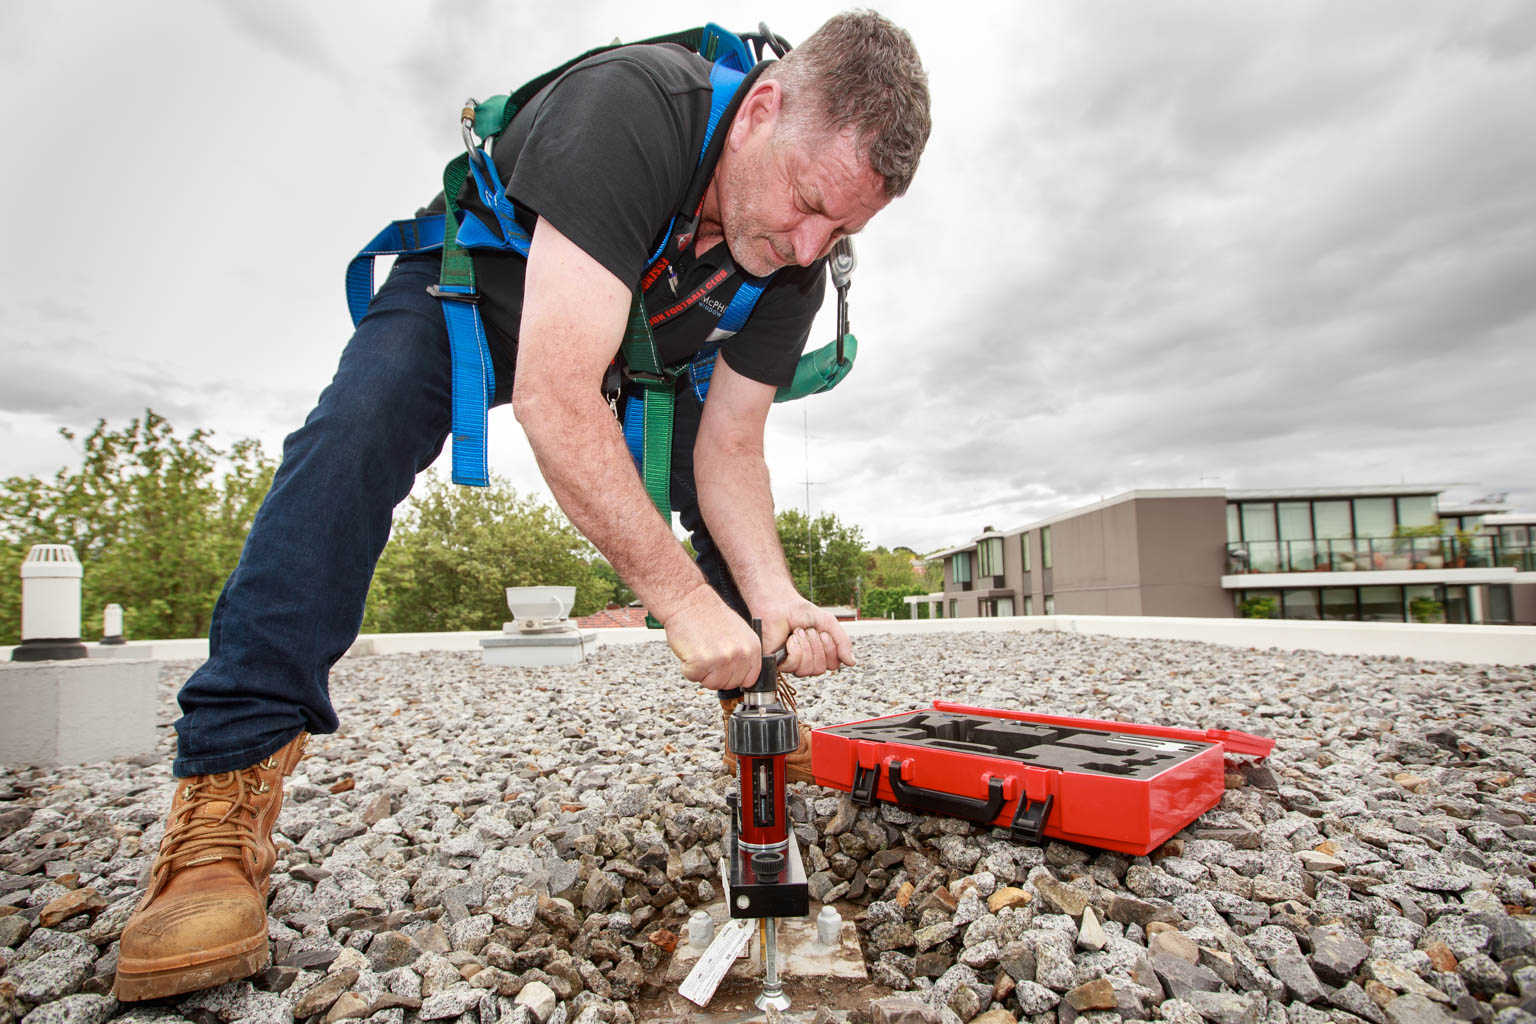 commercial photography of man on building roof pressure testing safety point